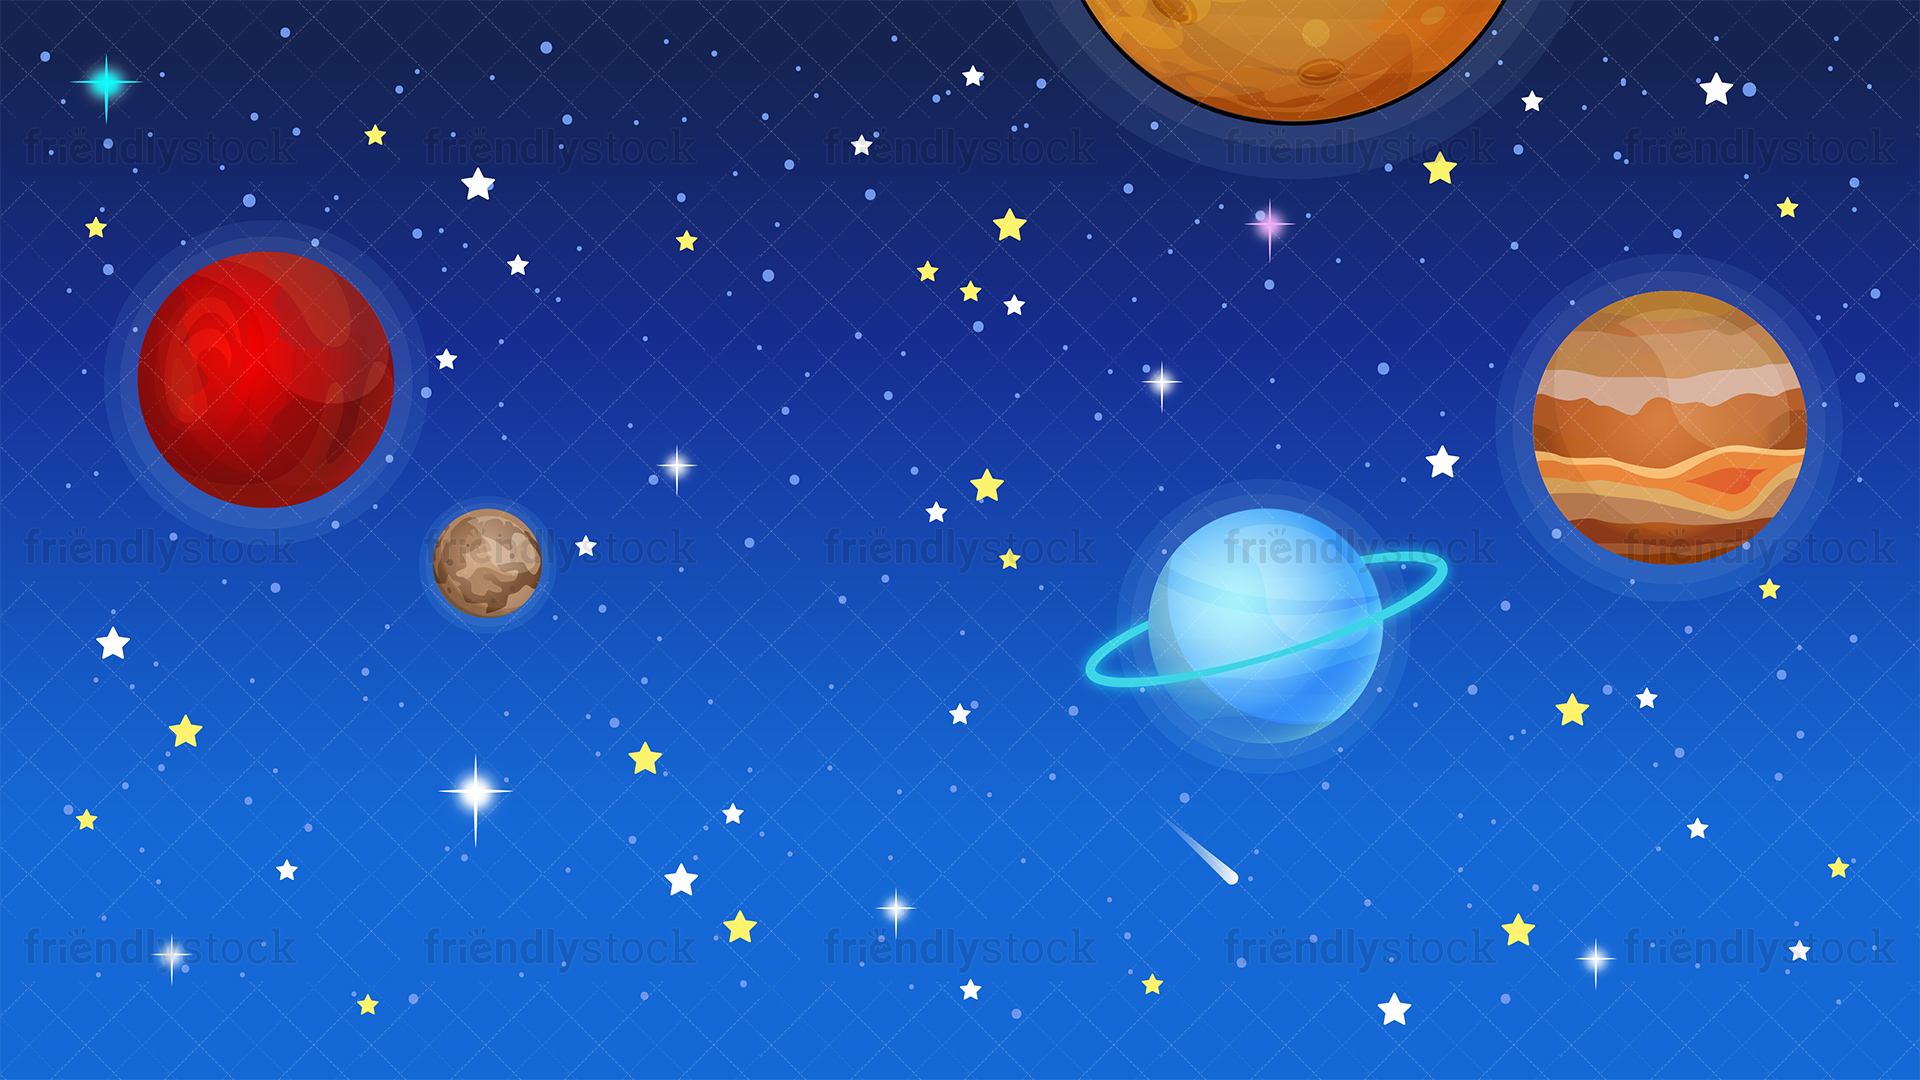 Outer Space Background.